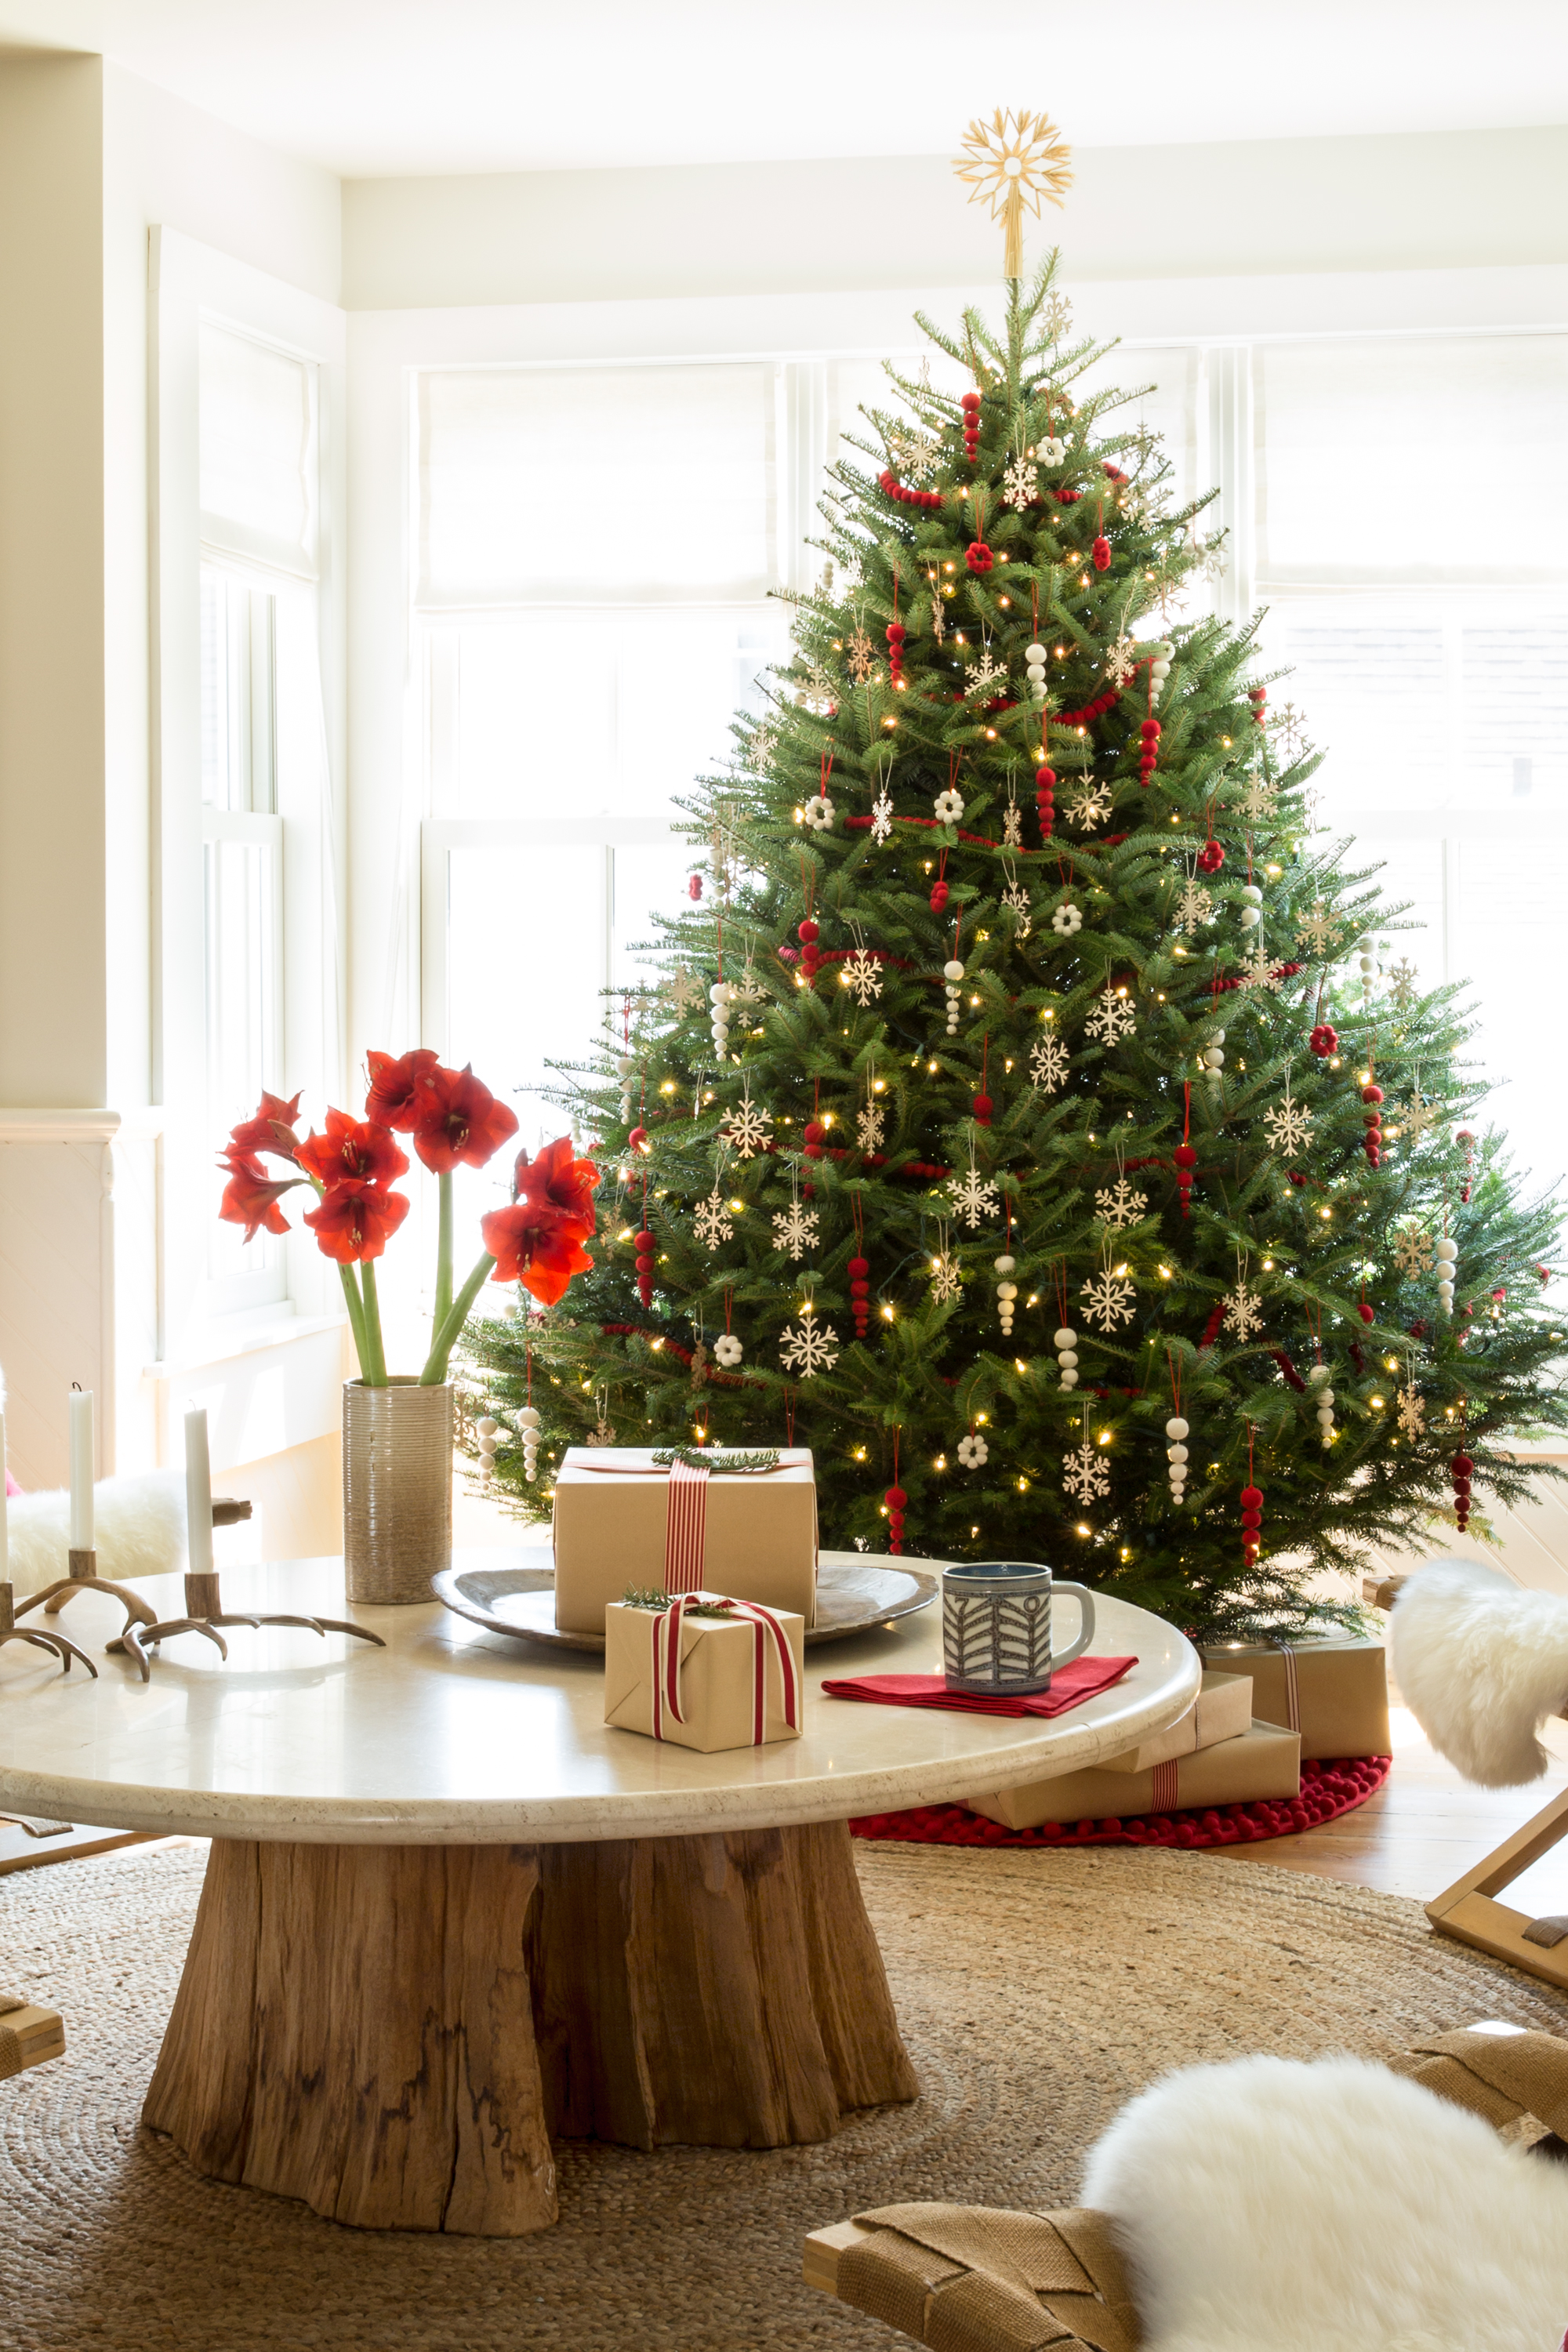 Christmas Decoration Images Classy 30 Best Christmas Home Tours  Houses Decorated For Christmas Design Decoration